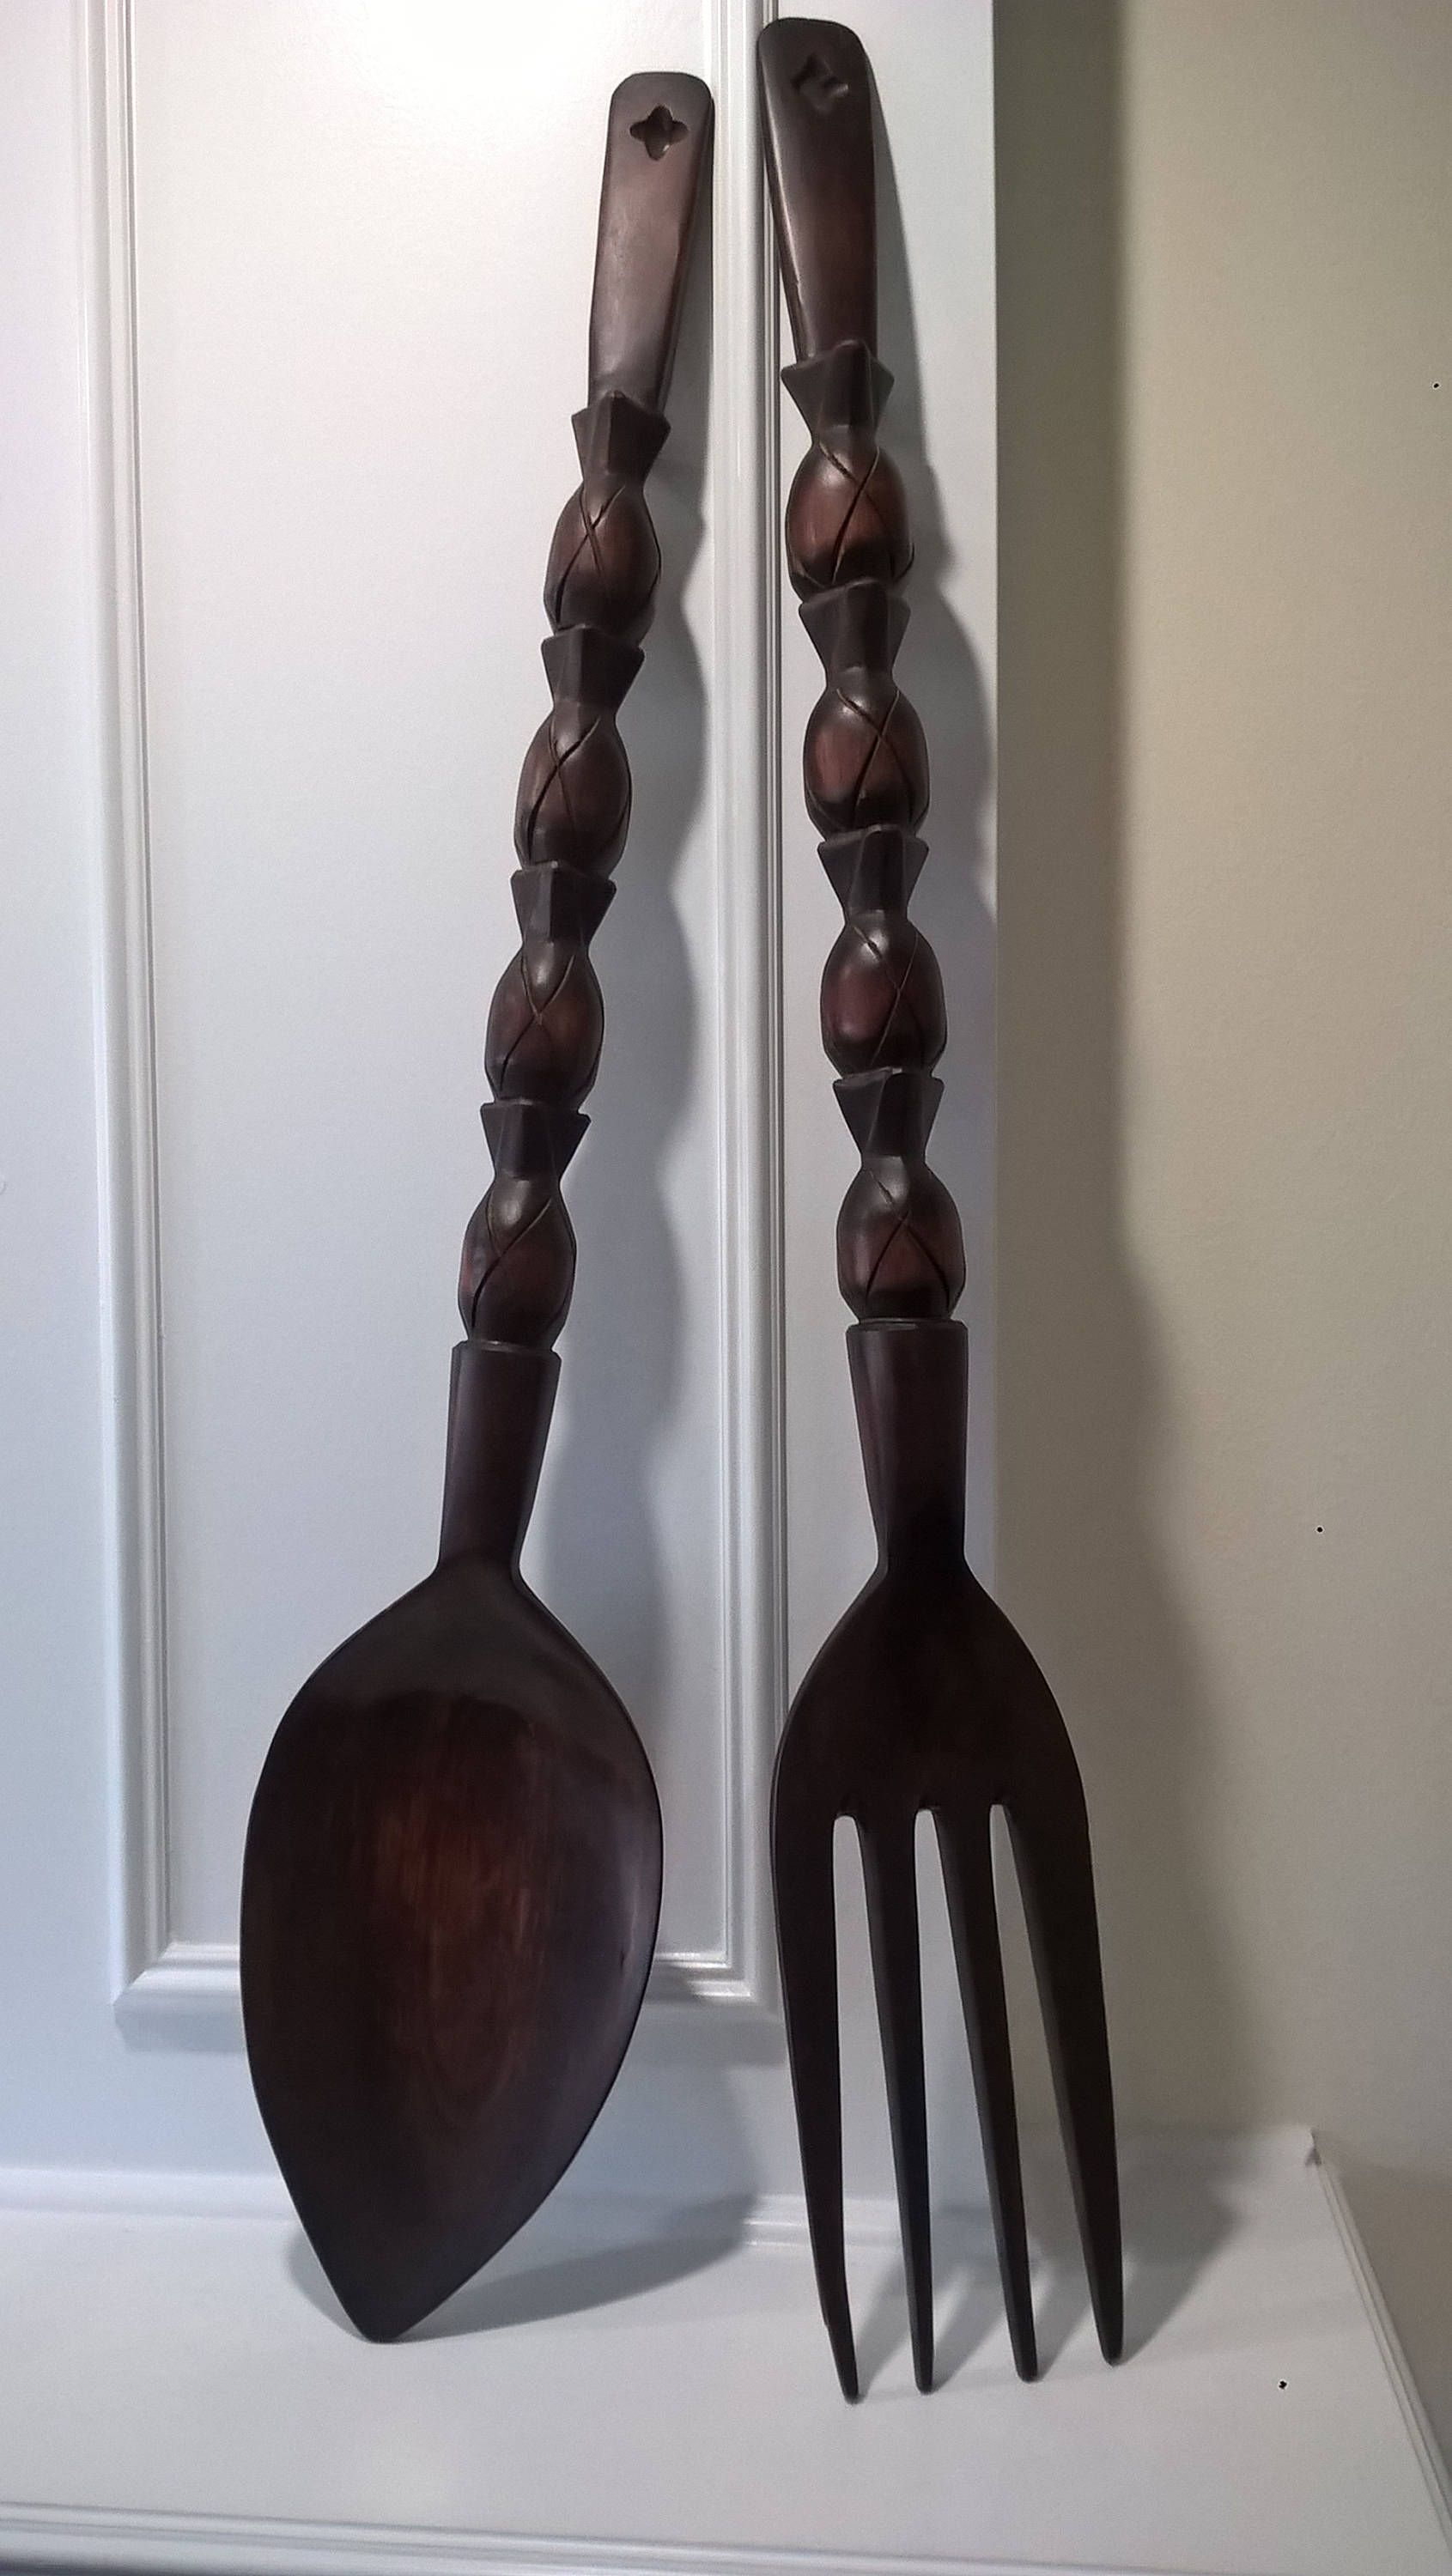 Vintage Extra Large Wood Fork And Spoon Wall Decor Retro 70 S Era